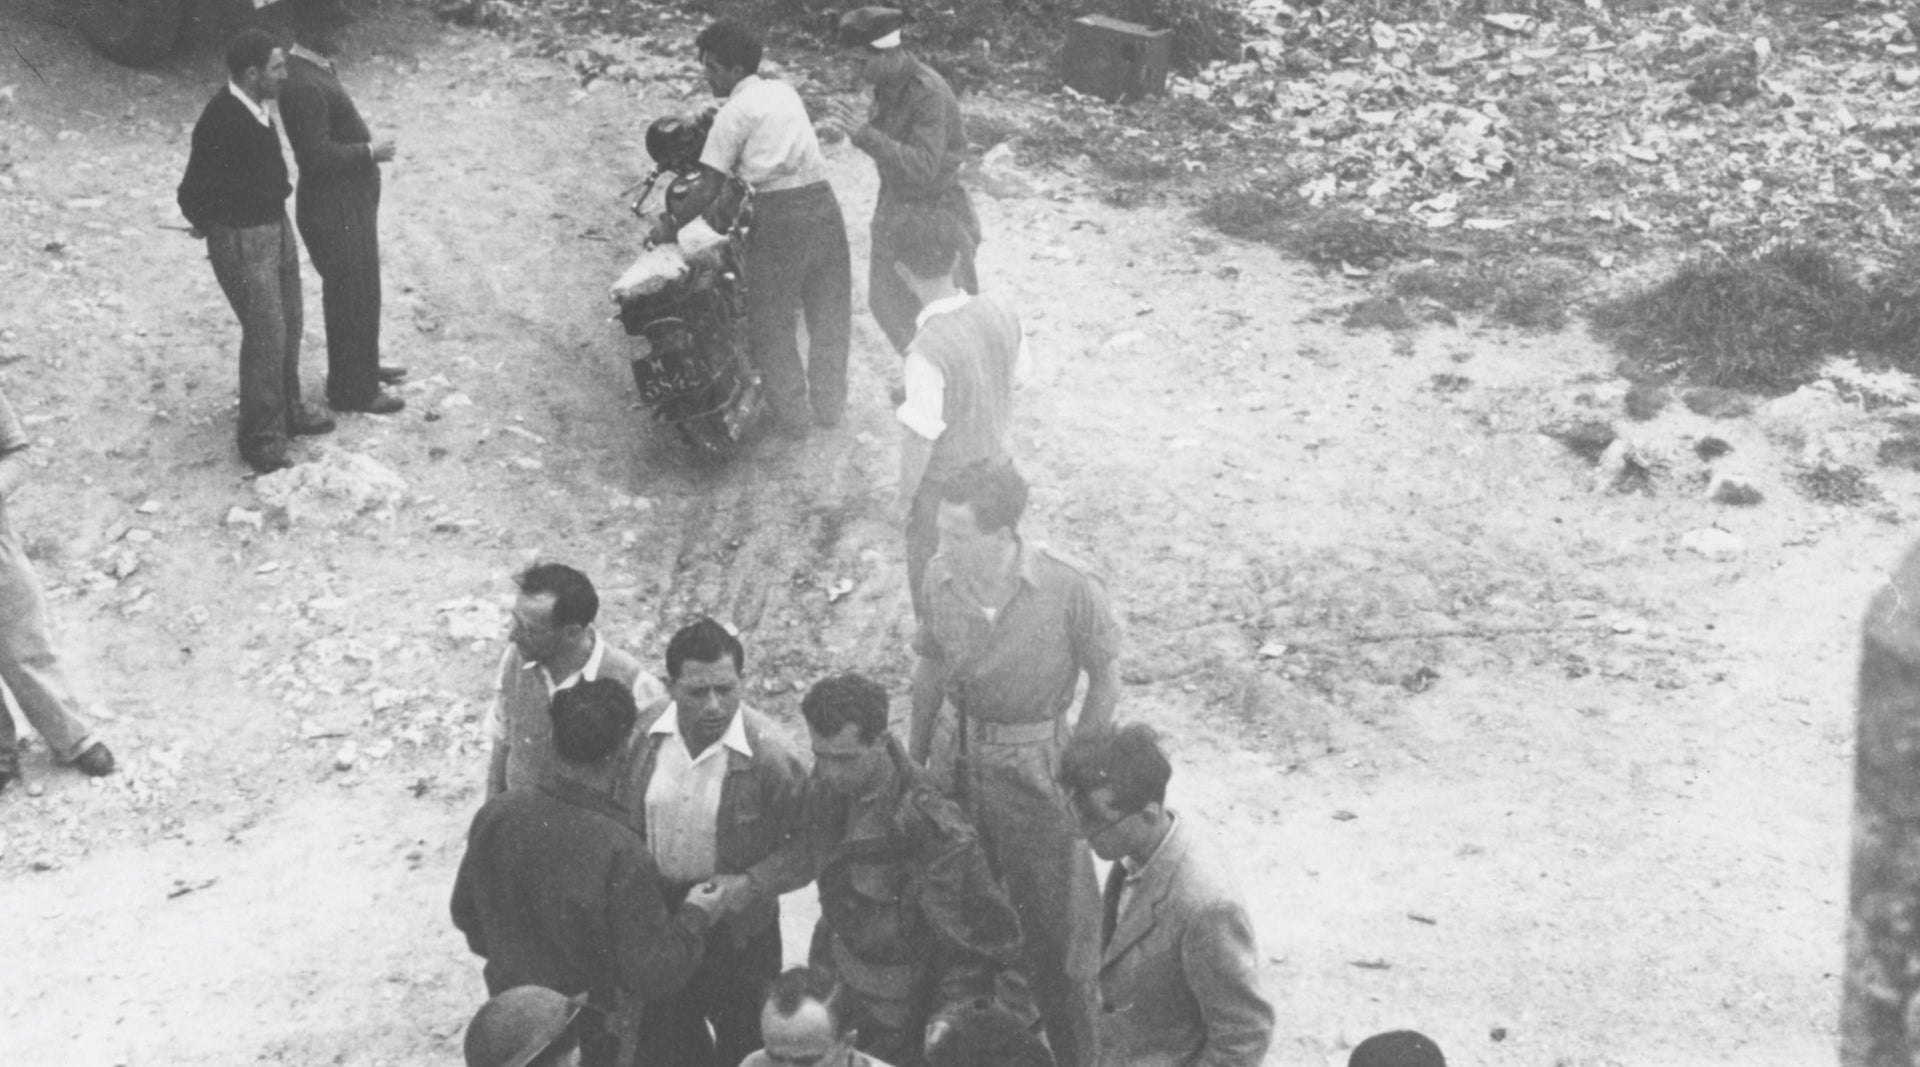 Pictures of the occupation of Deir Yassin. Most researchers state that 110 inhabitants of the village were killed there.